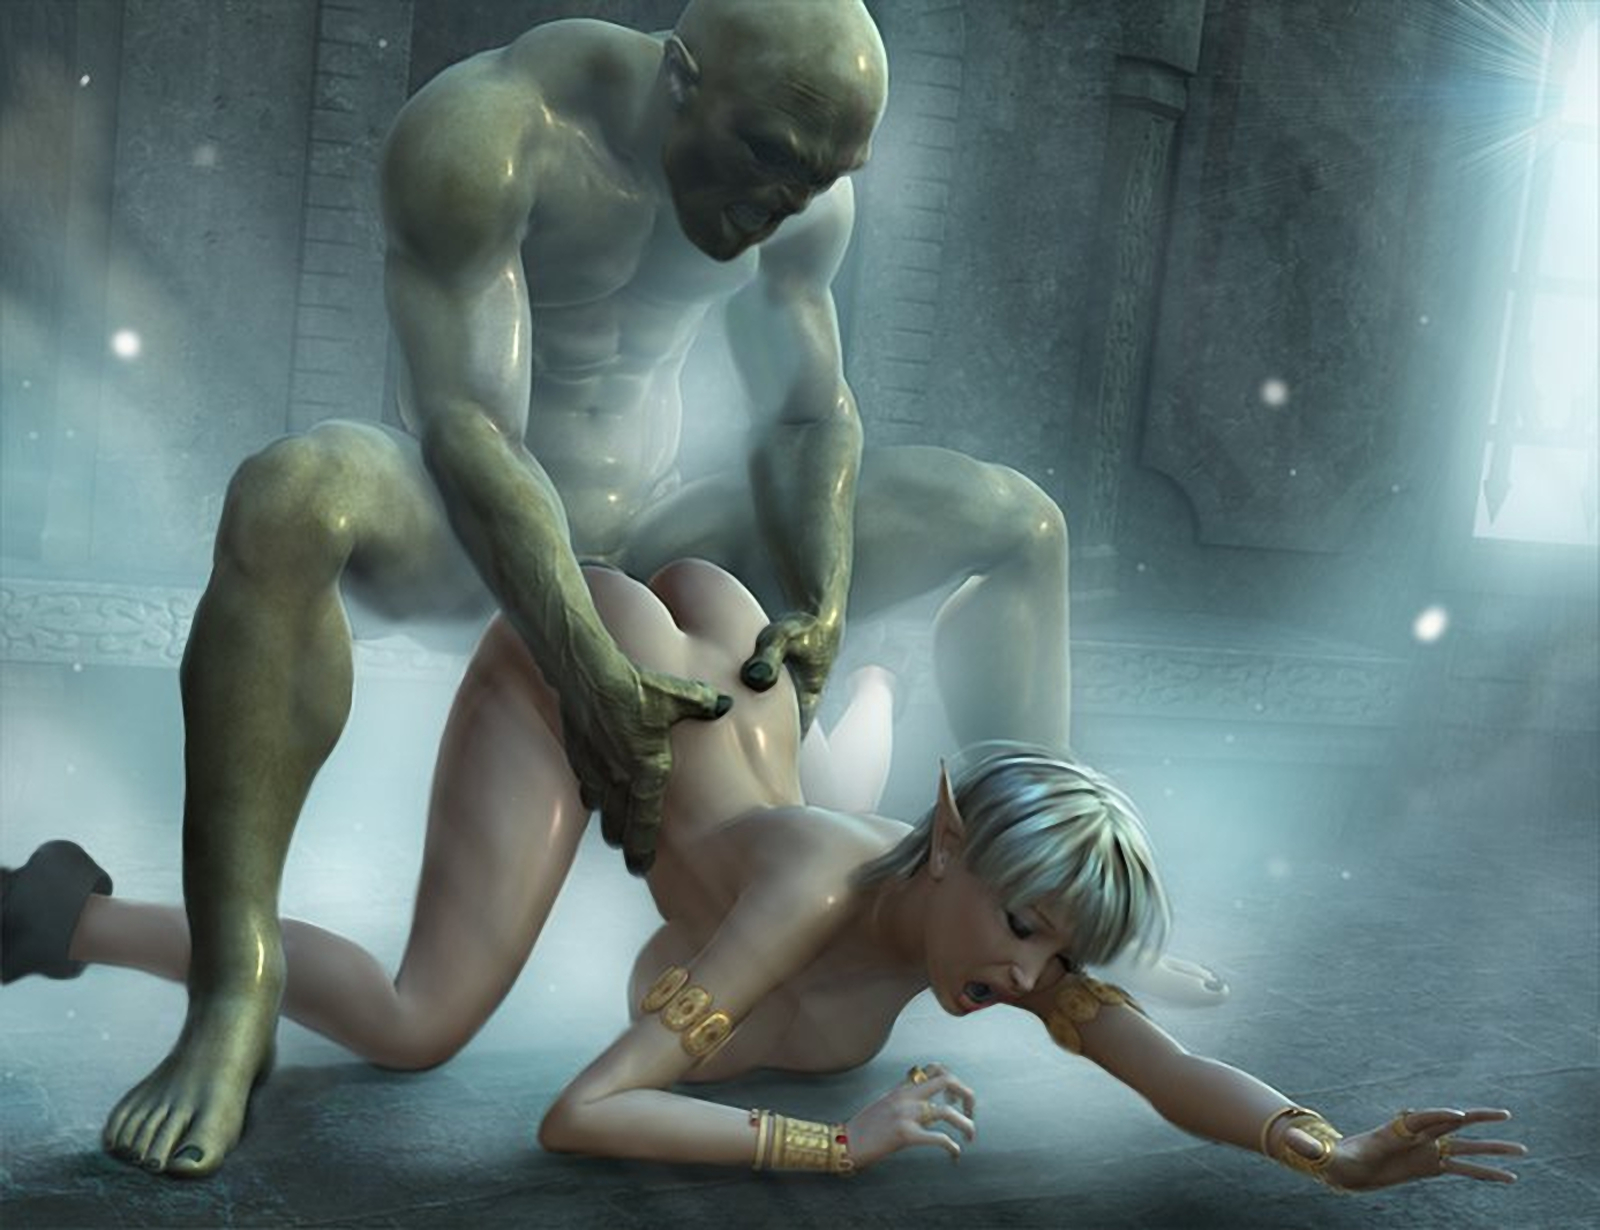 Fantasy 3d monster sex xxx movie